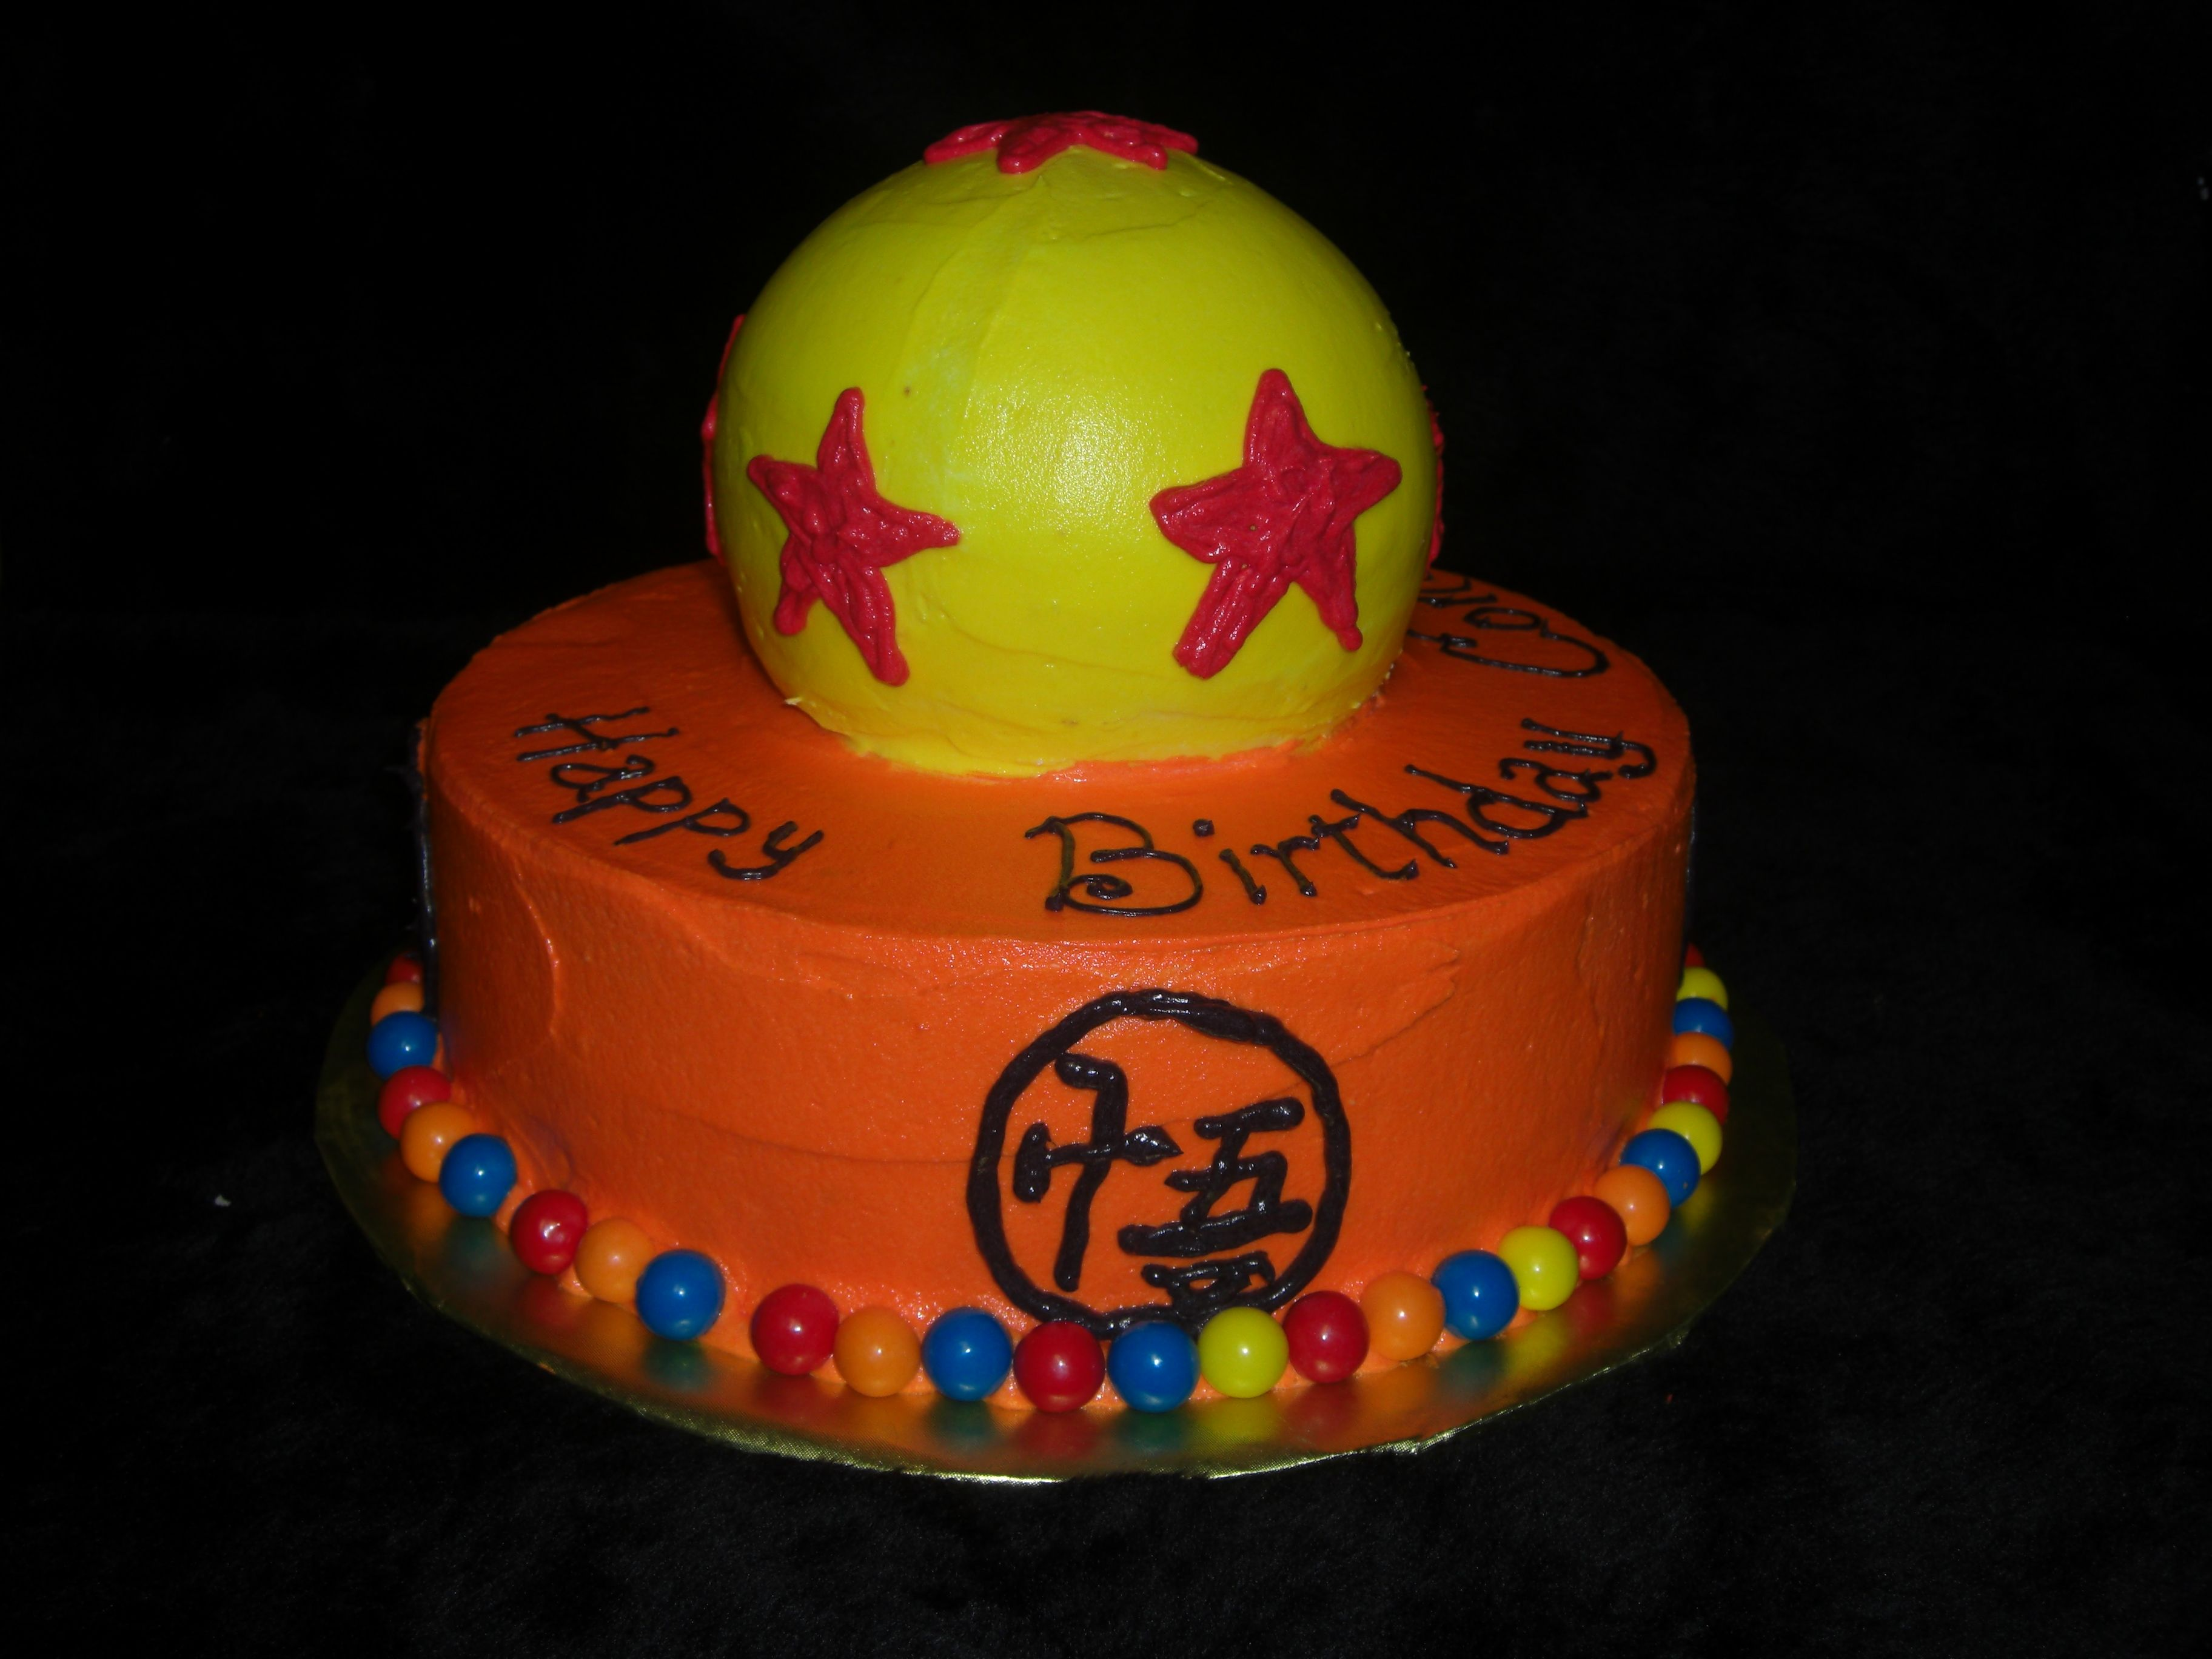 Dragon Ball Z Cake For The Groom Cake Either That Or Naruto Birthday Cake Kids Cartoon Cake Themed Cakes